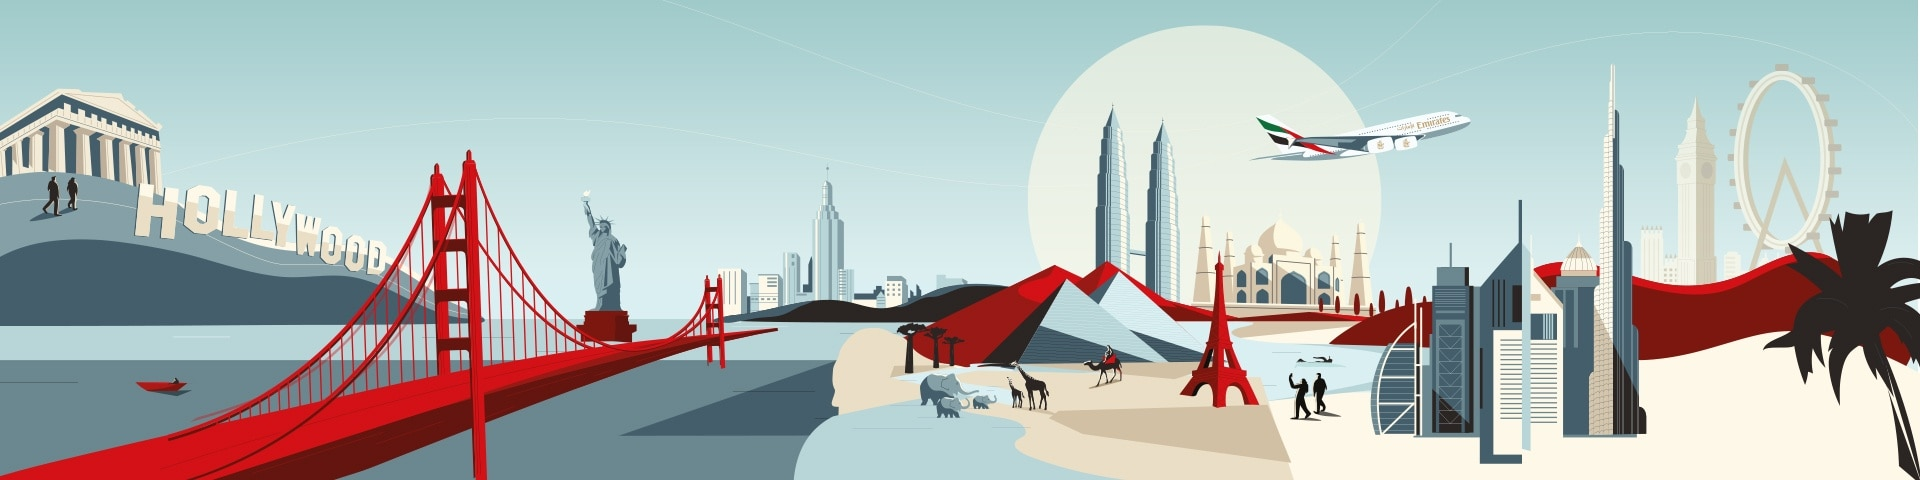 Emirates Flights Book A Flight Browse Our Flight Offers And Explore The Emirates Experience